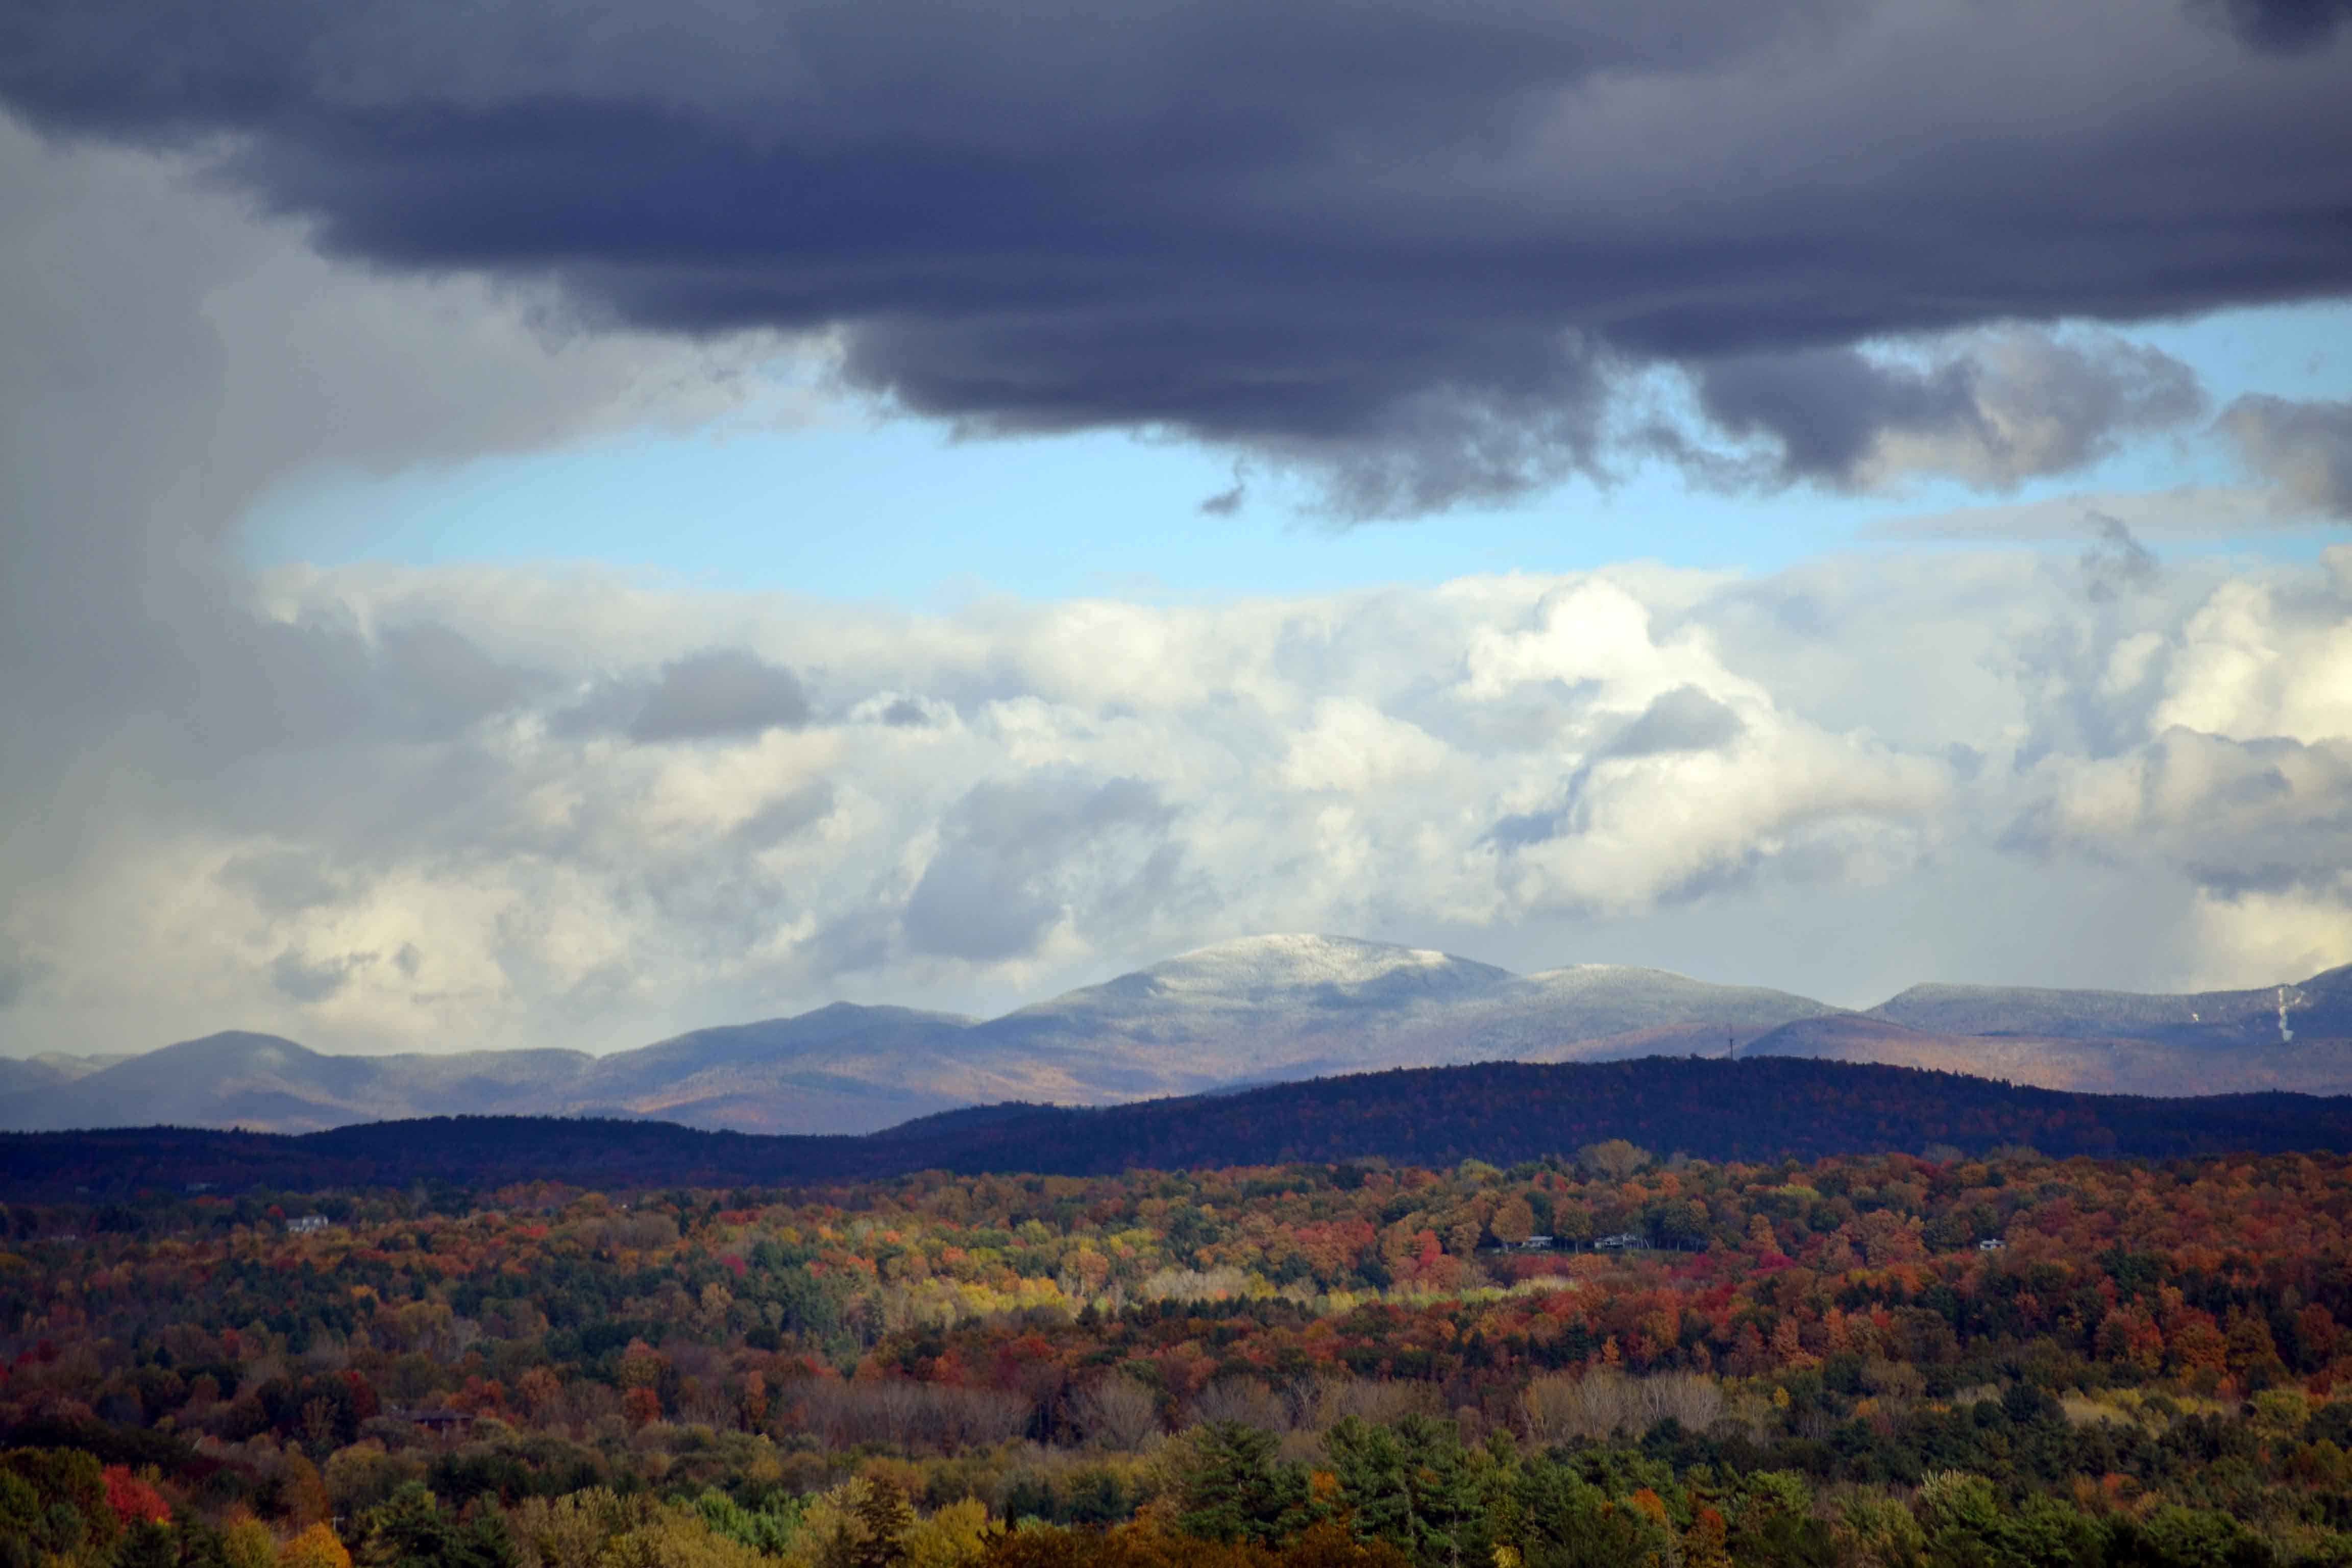 Shelburne Farm, south of Burlington, provides a view of snowsqualls across the Lake Champlain Valley and Camel's Hump, Vermont's third highest mountain. (Photo by Timothy Collins)